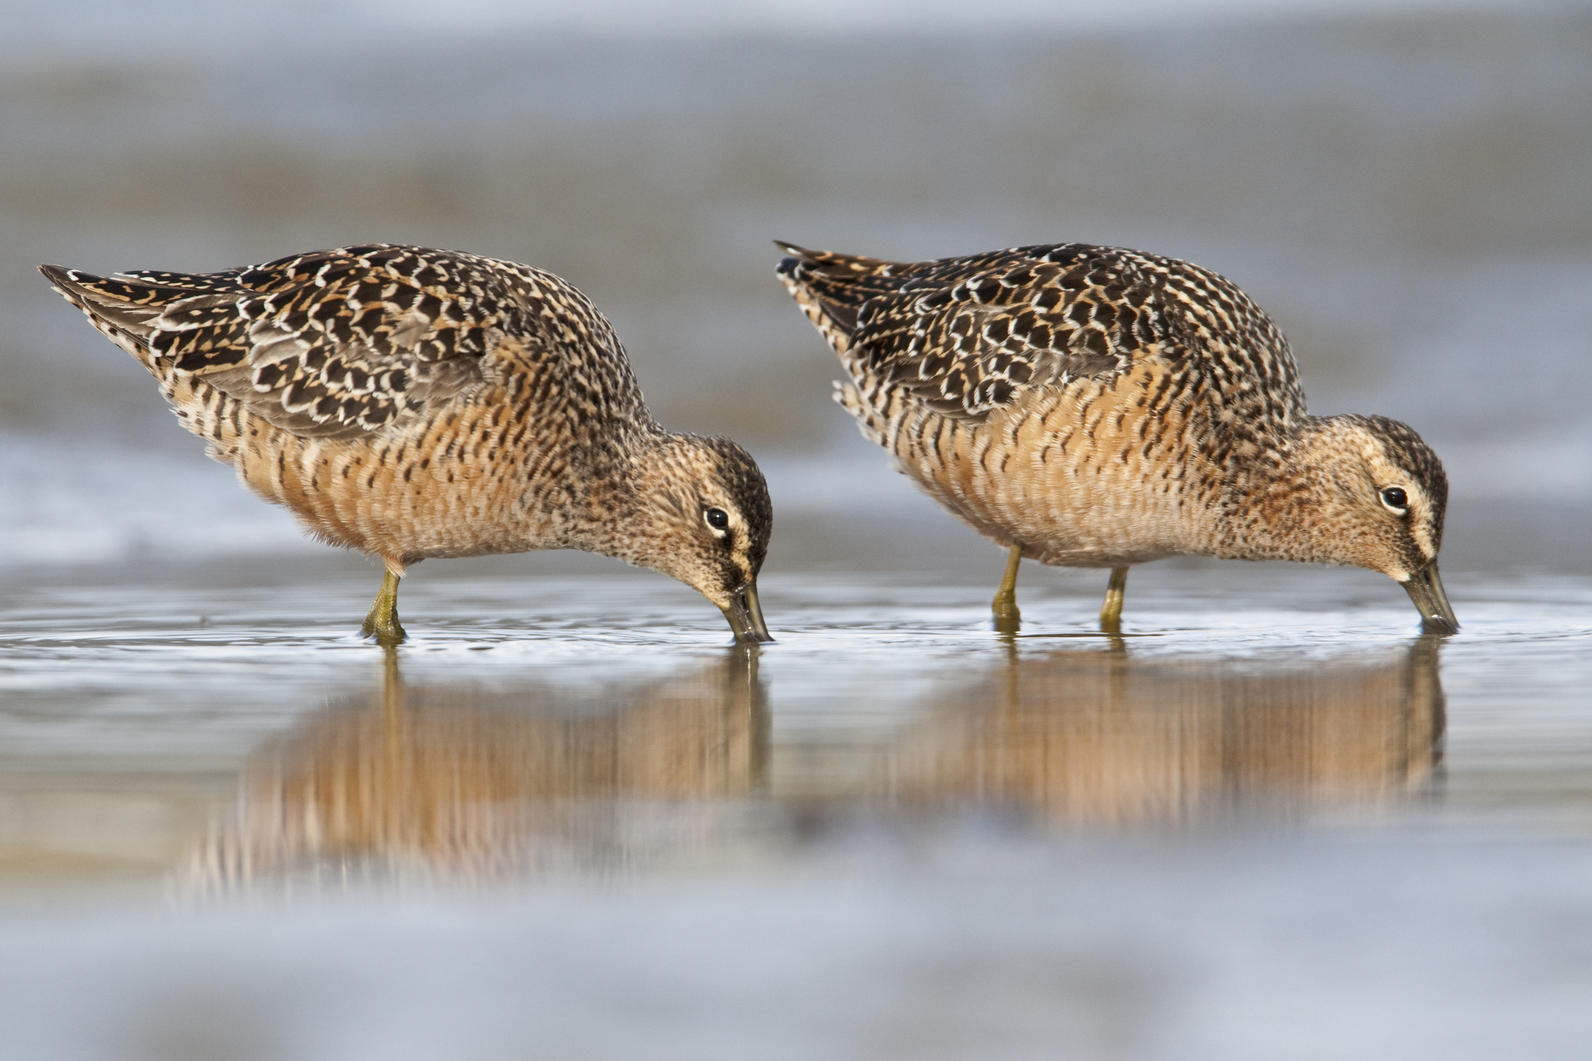 Long-billed Dowitchers feeding